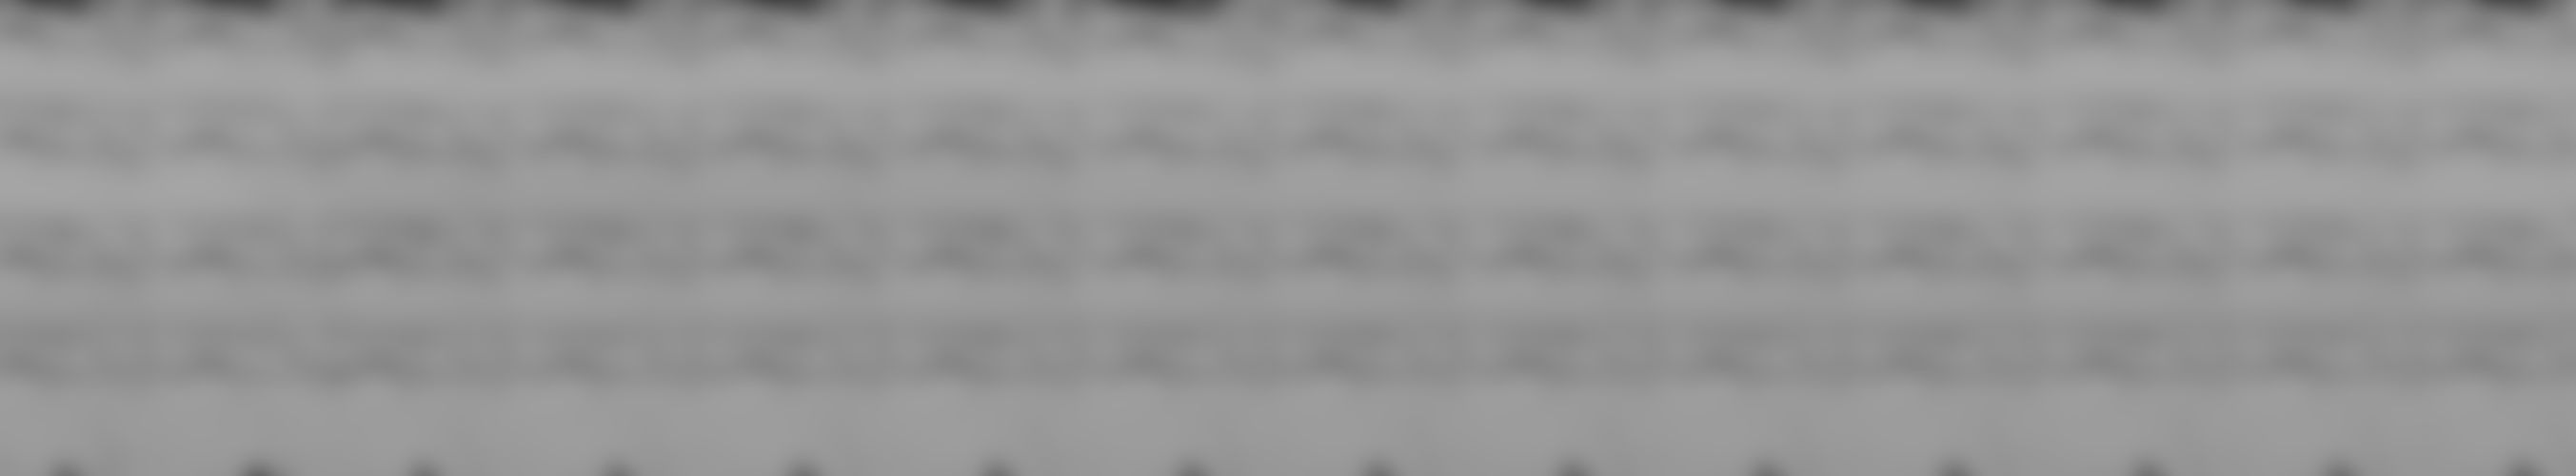 Webcam panoramique des Monts du Cantal